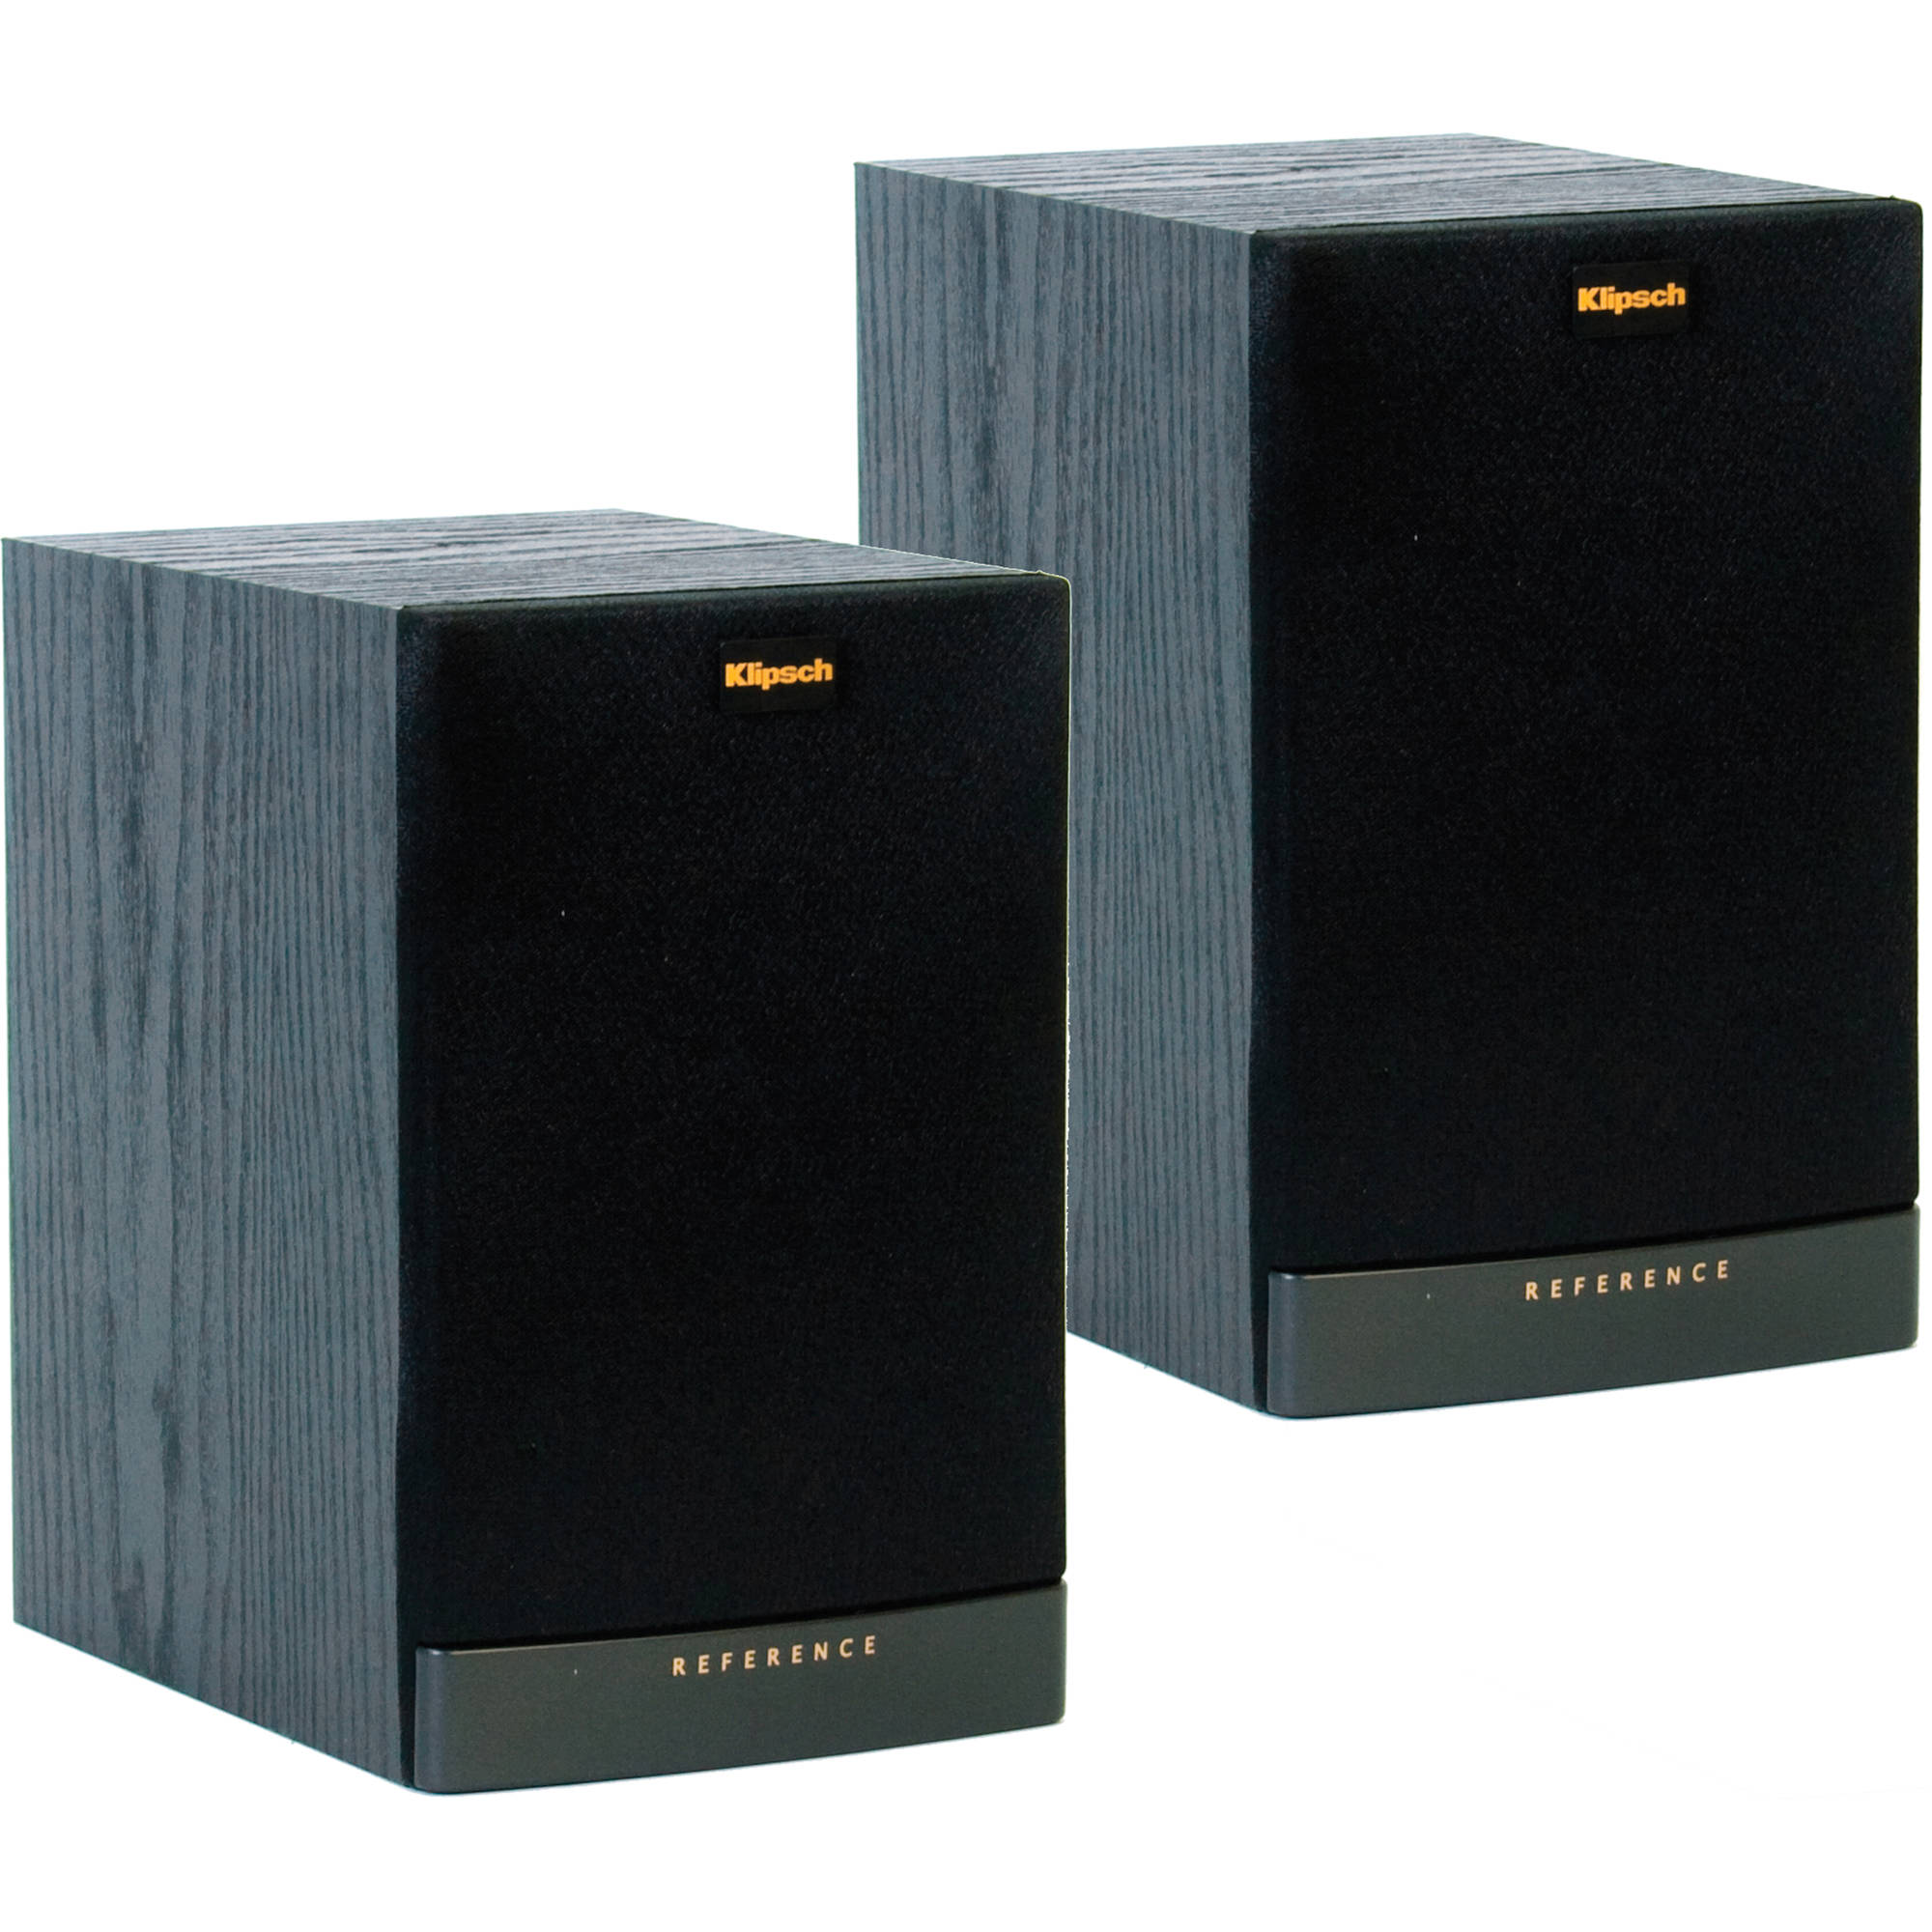 klipsch rb 41 ii bookshelf speakers pair black 1011855 b h. Black Bedroom Furniture Sets. Home Design Ideas